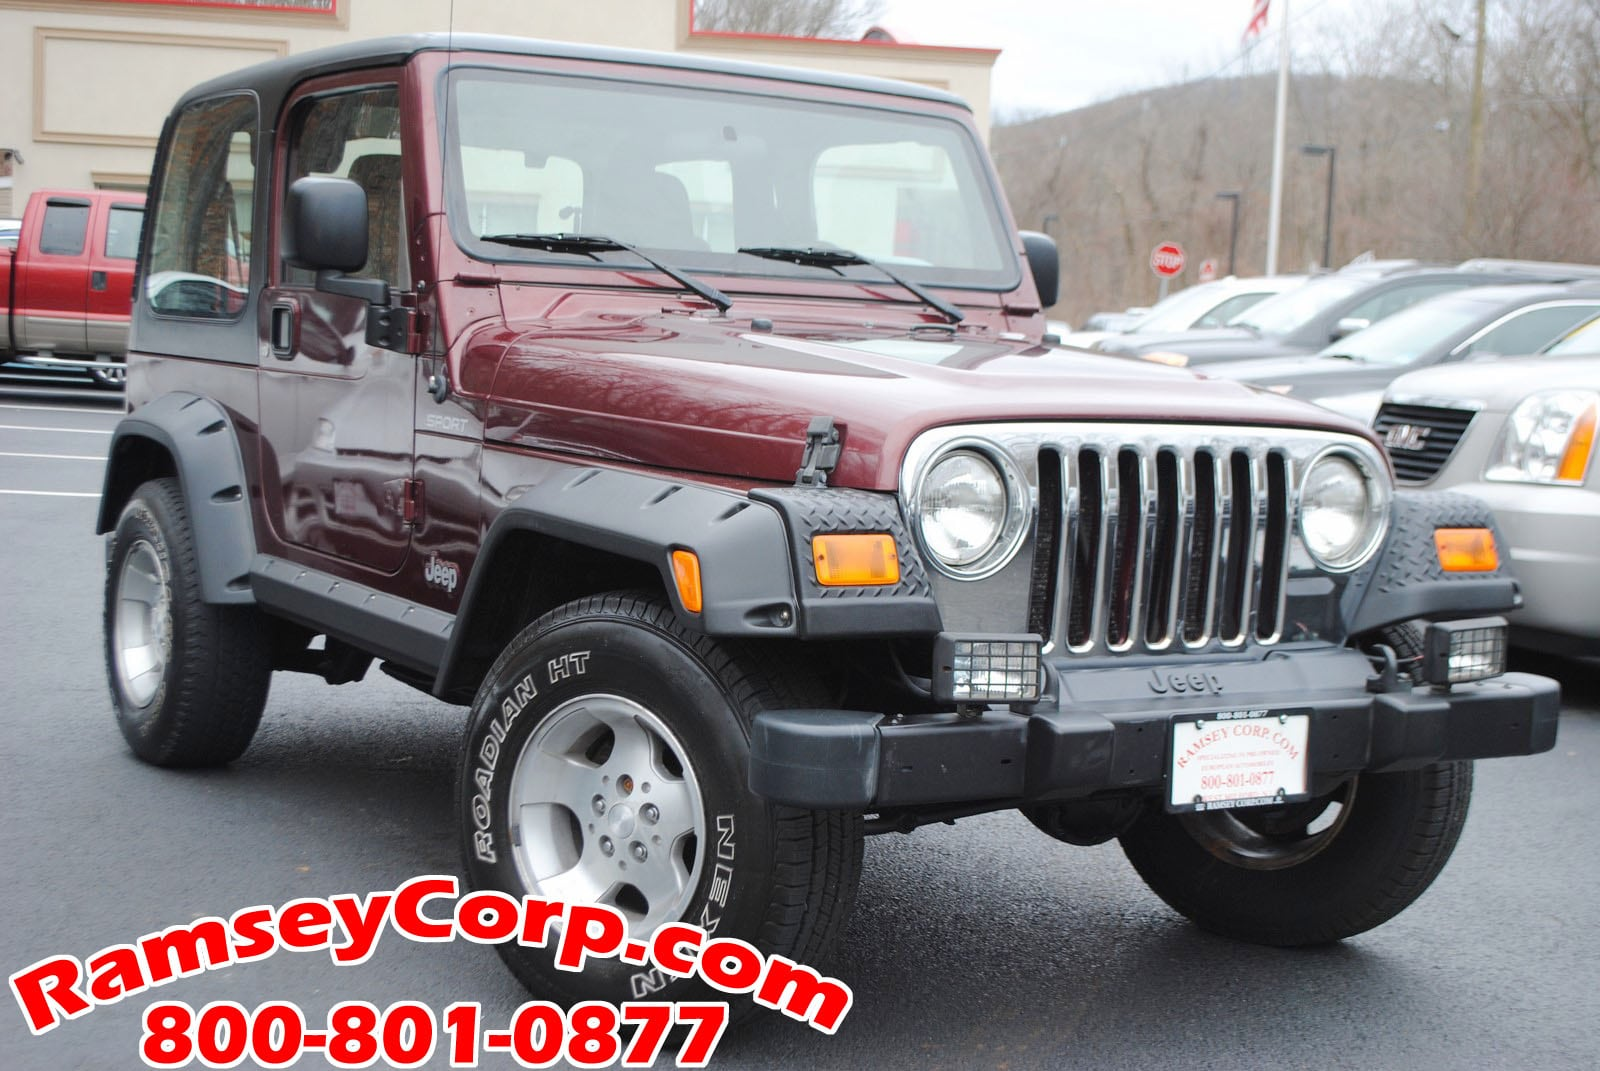 used 2003 jeep wrangler for sale west milford nj. Black Bedroom Furniture Sets. Home Design Ideas